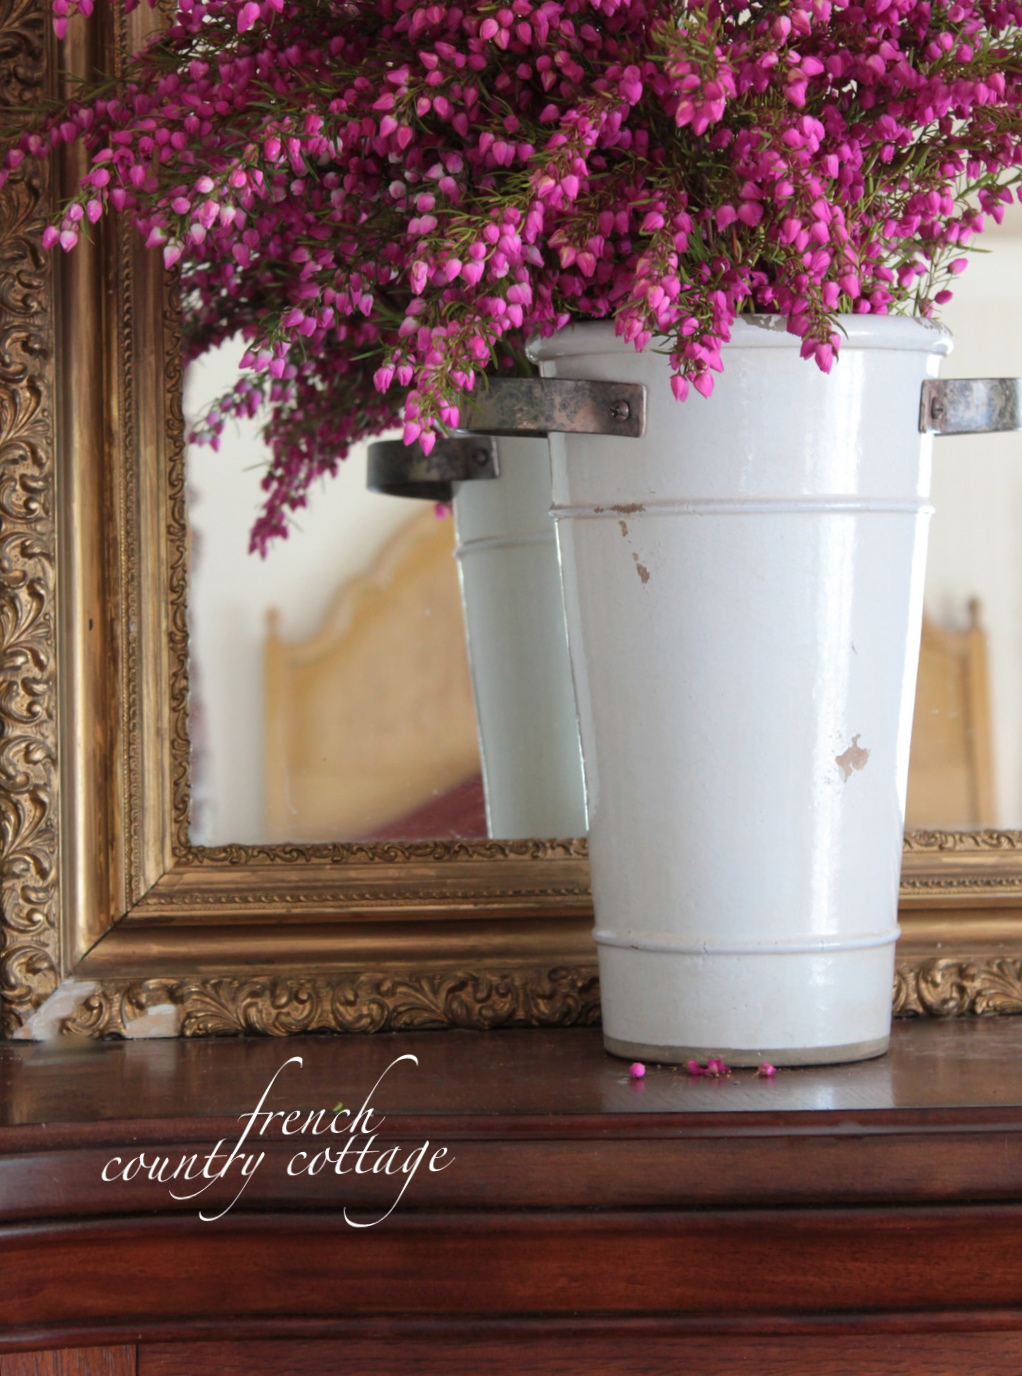 White flower in french images flower decoration ideas white flower bucket french country cottage mightylinksfo mightylinksfo